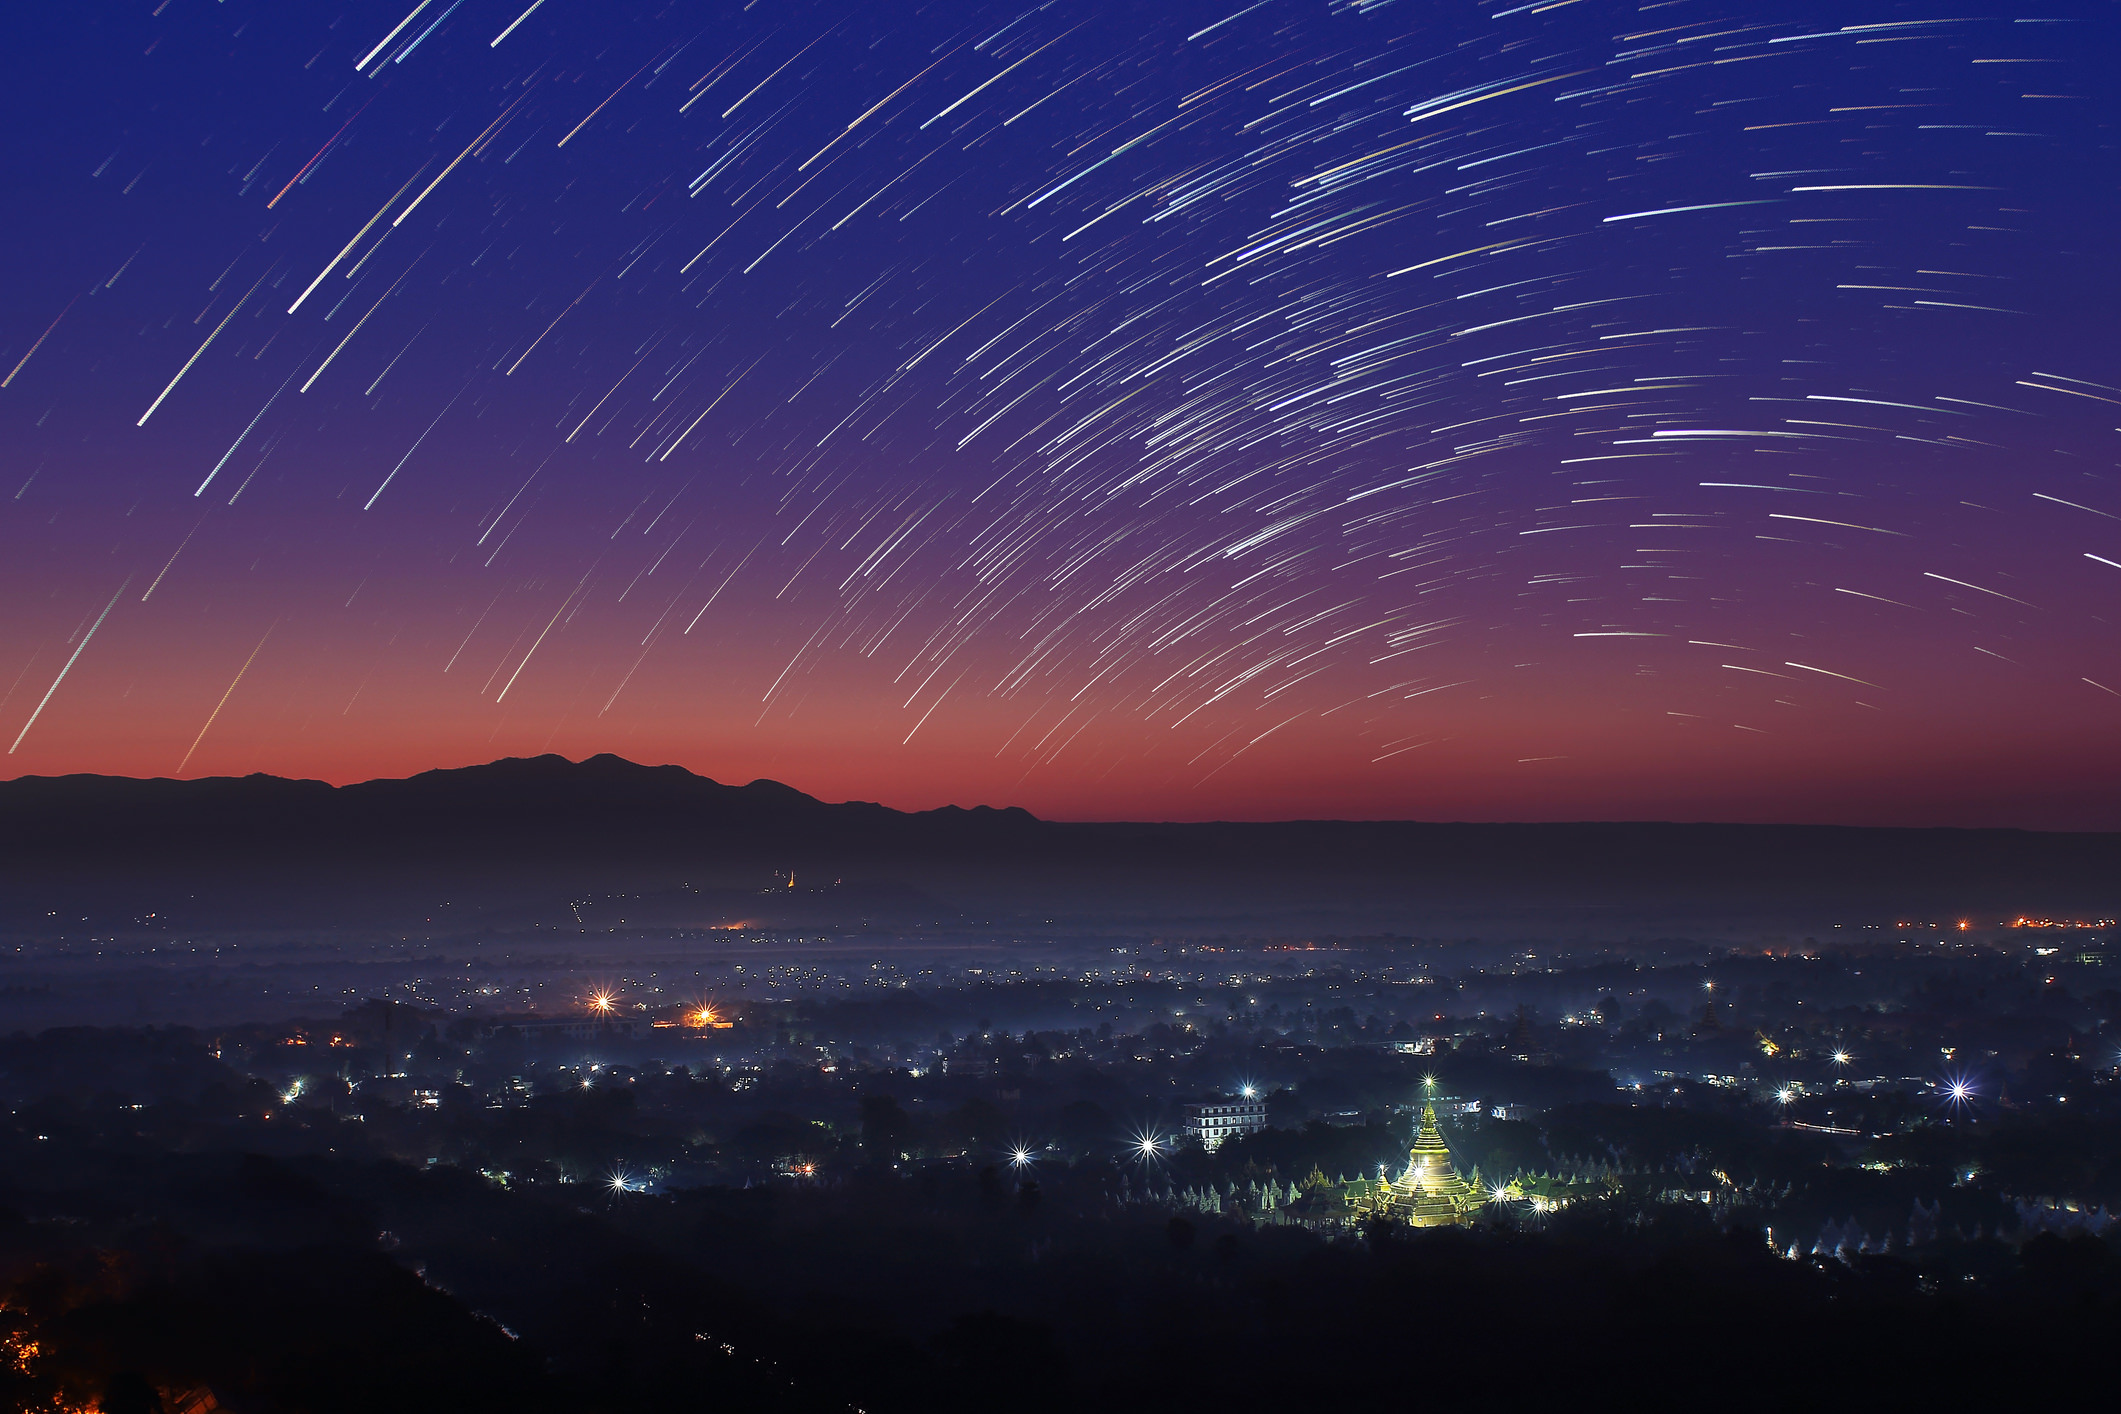 Crucial Tips for Perfecting Your Astrophotography